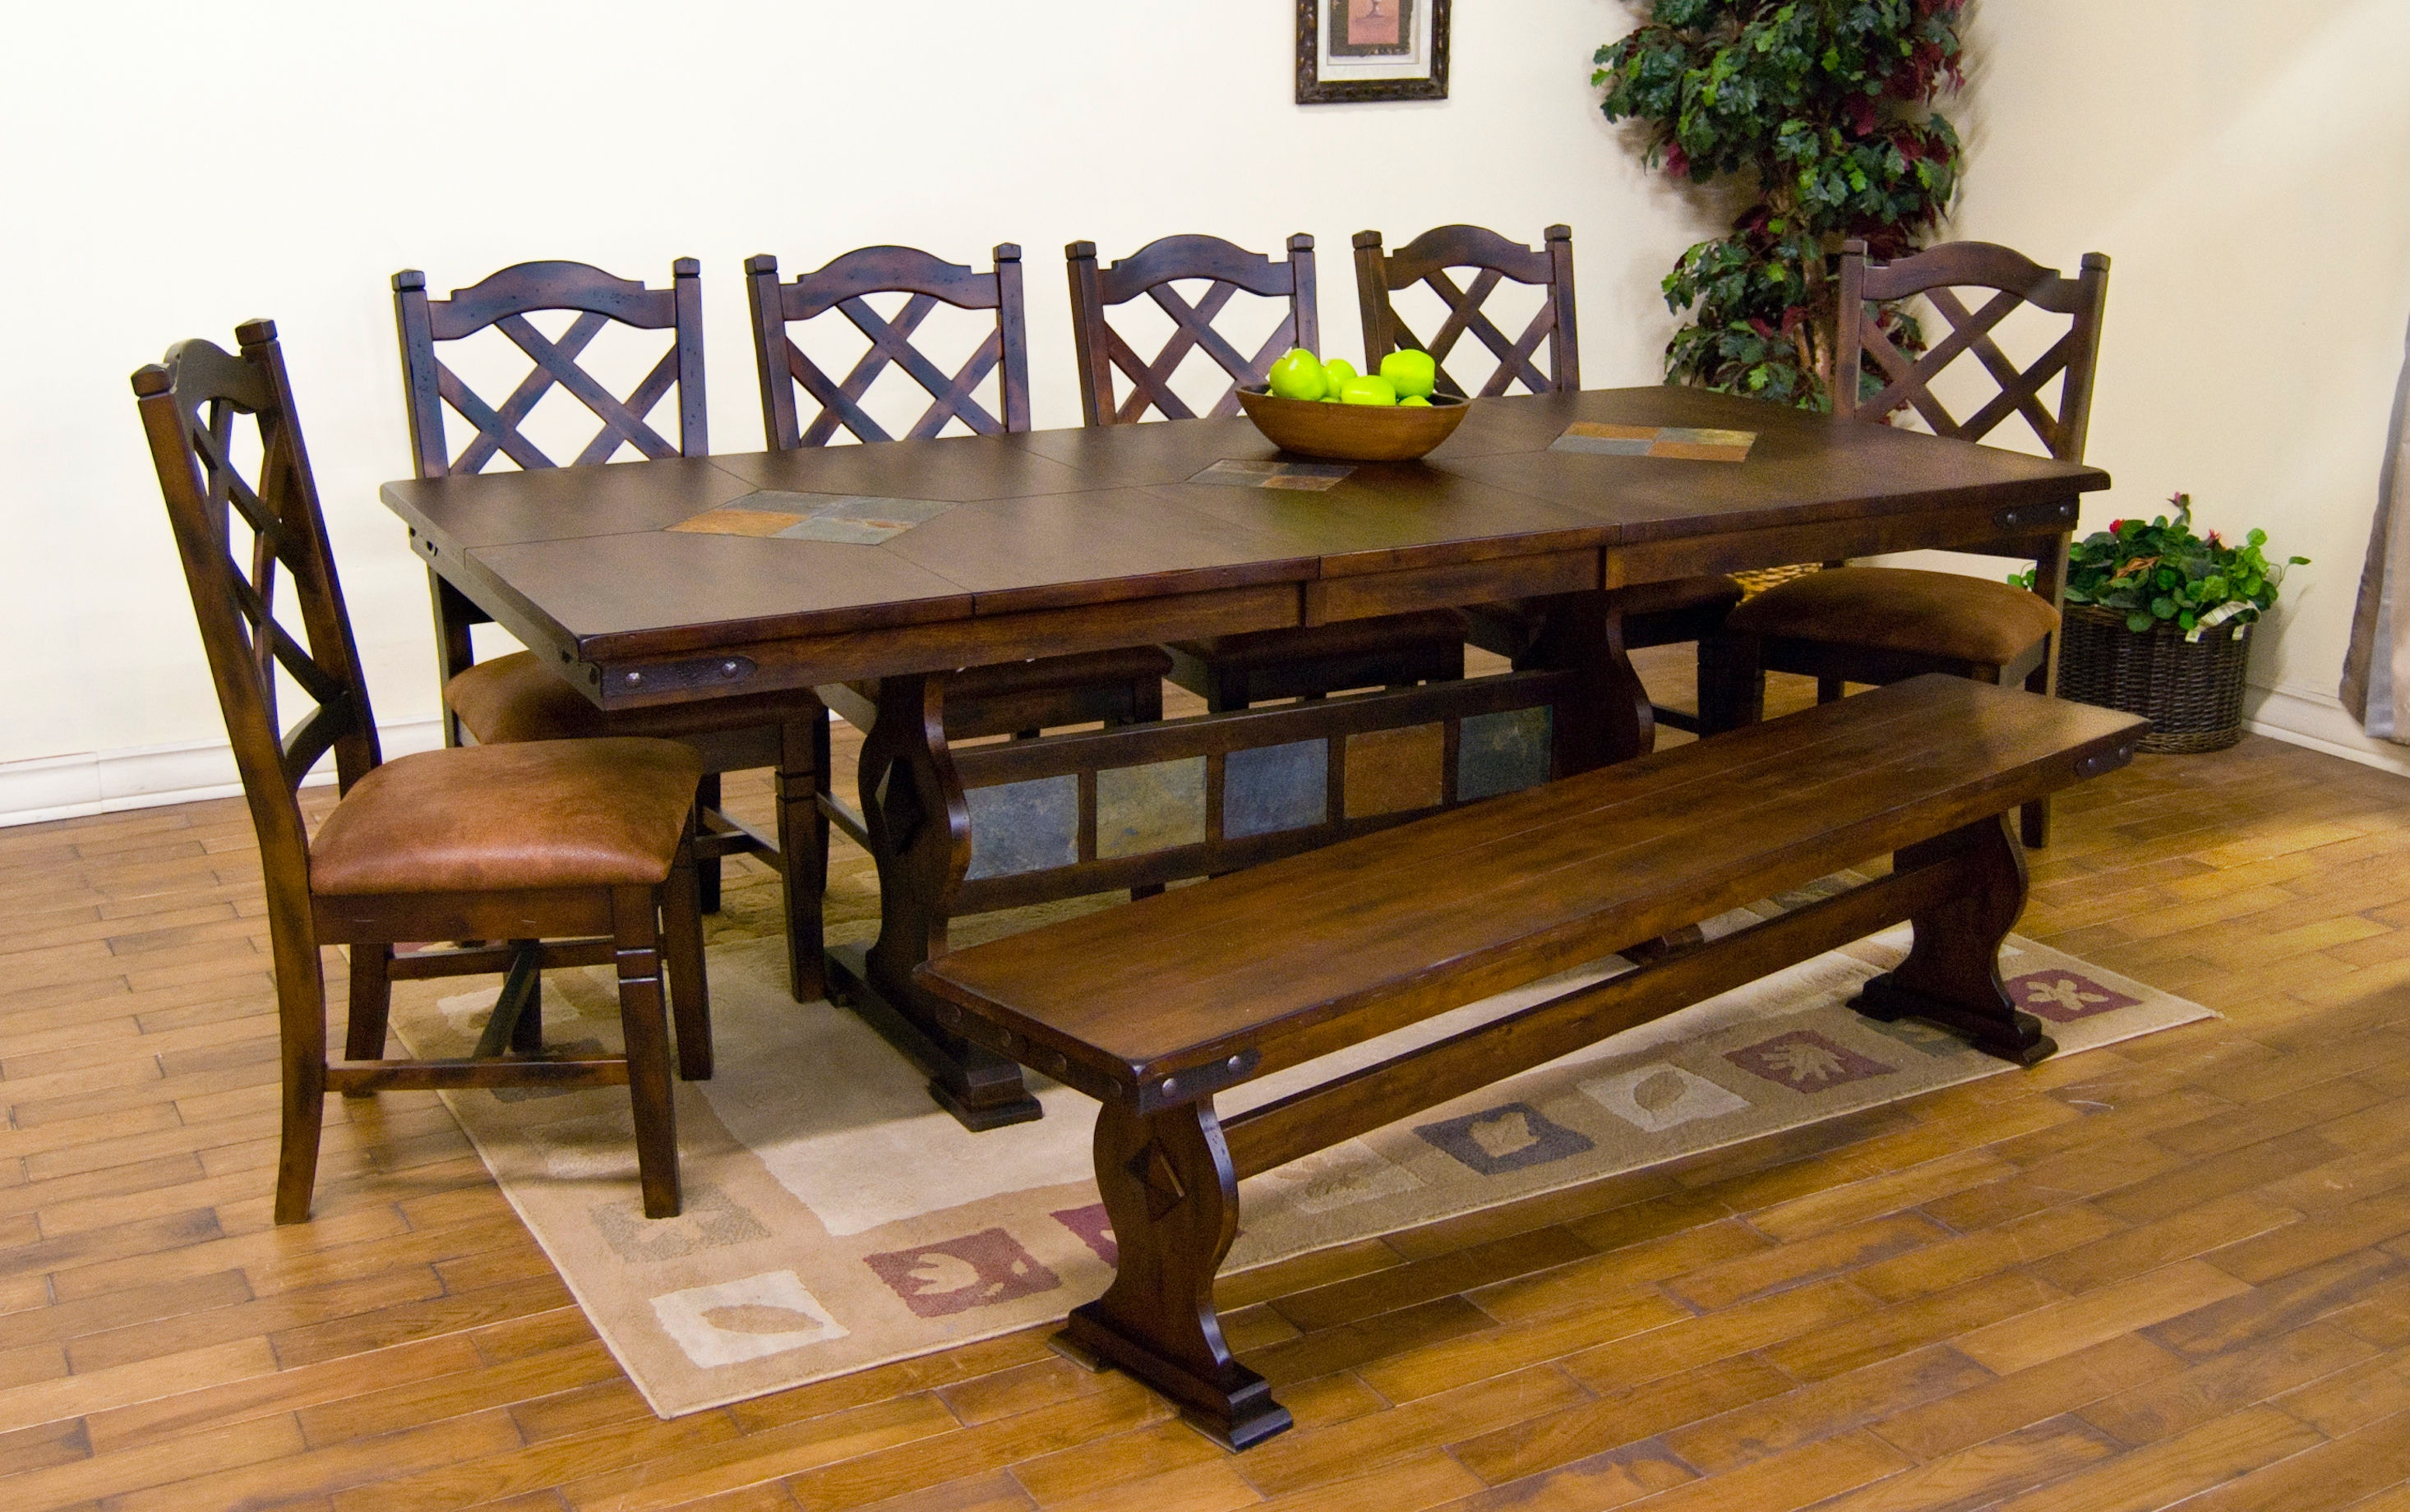 ... Blackledge Furniture Corvallis Or By Sunny Designs Dining Room Santa Fe  Trestle Table With ...